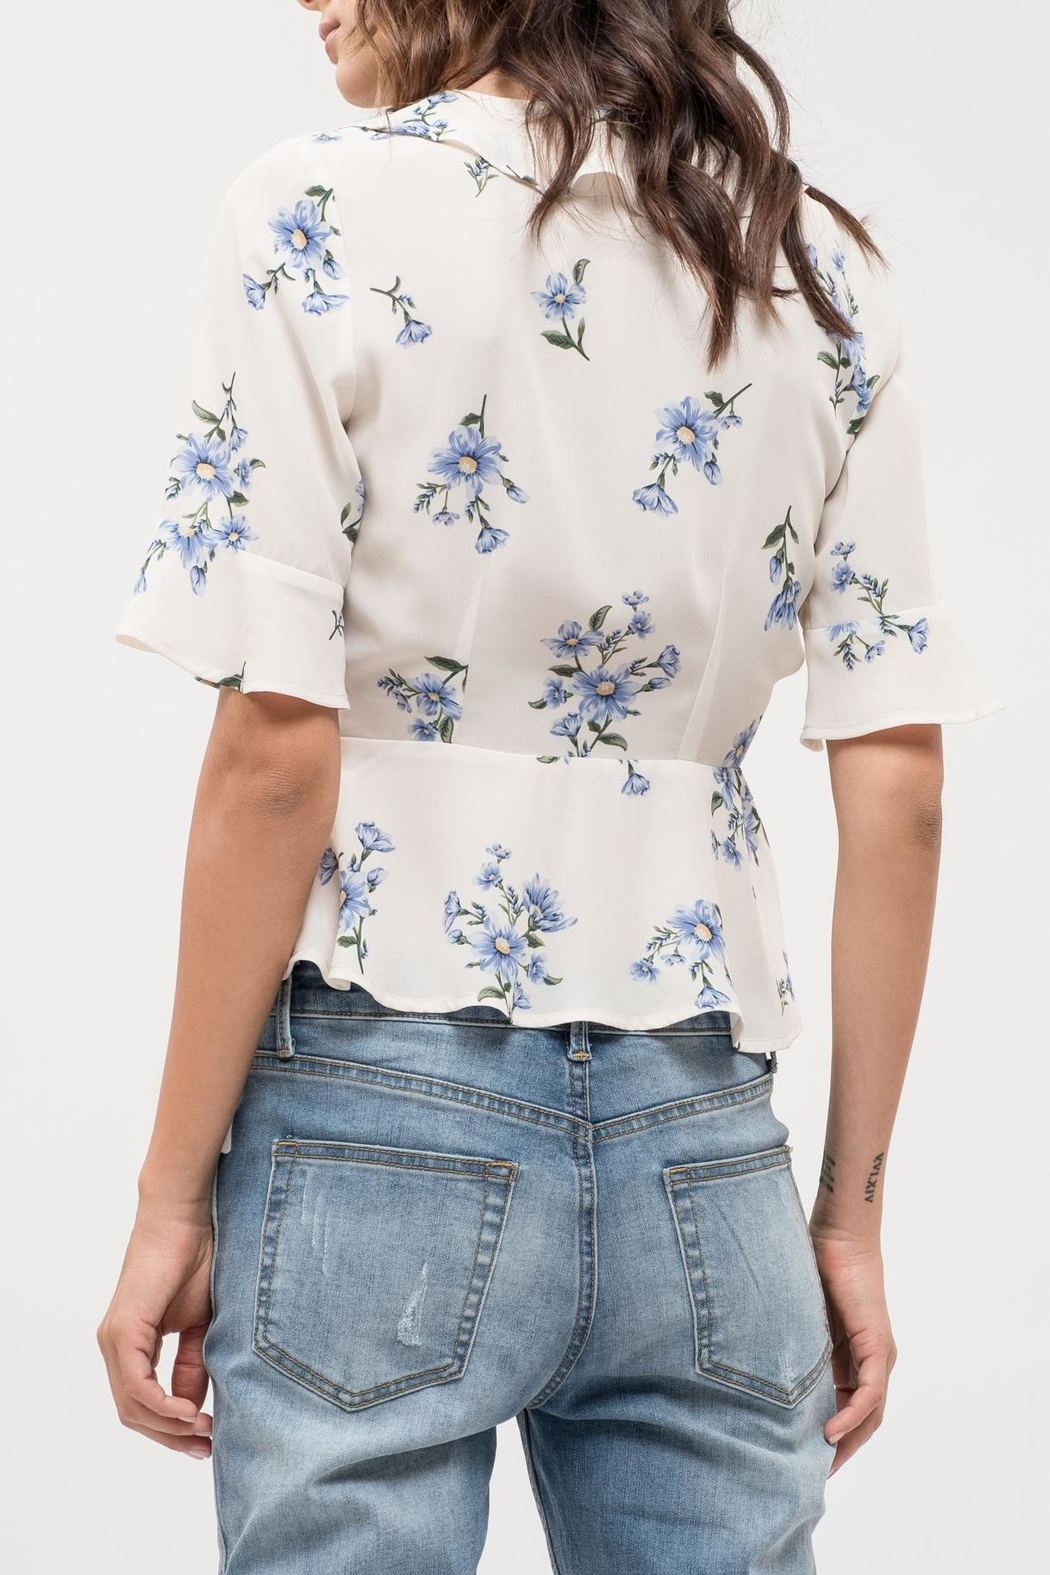 Blu Pepper Floral Wrap Top - Front Full Image